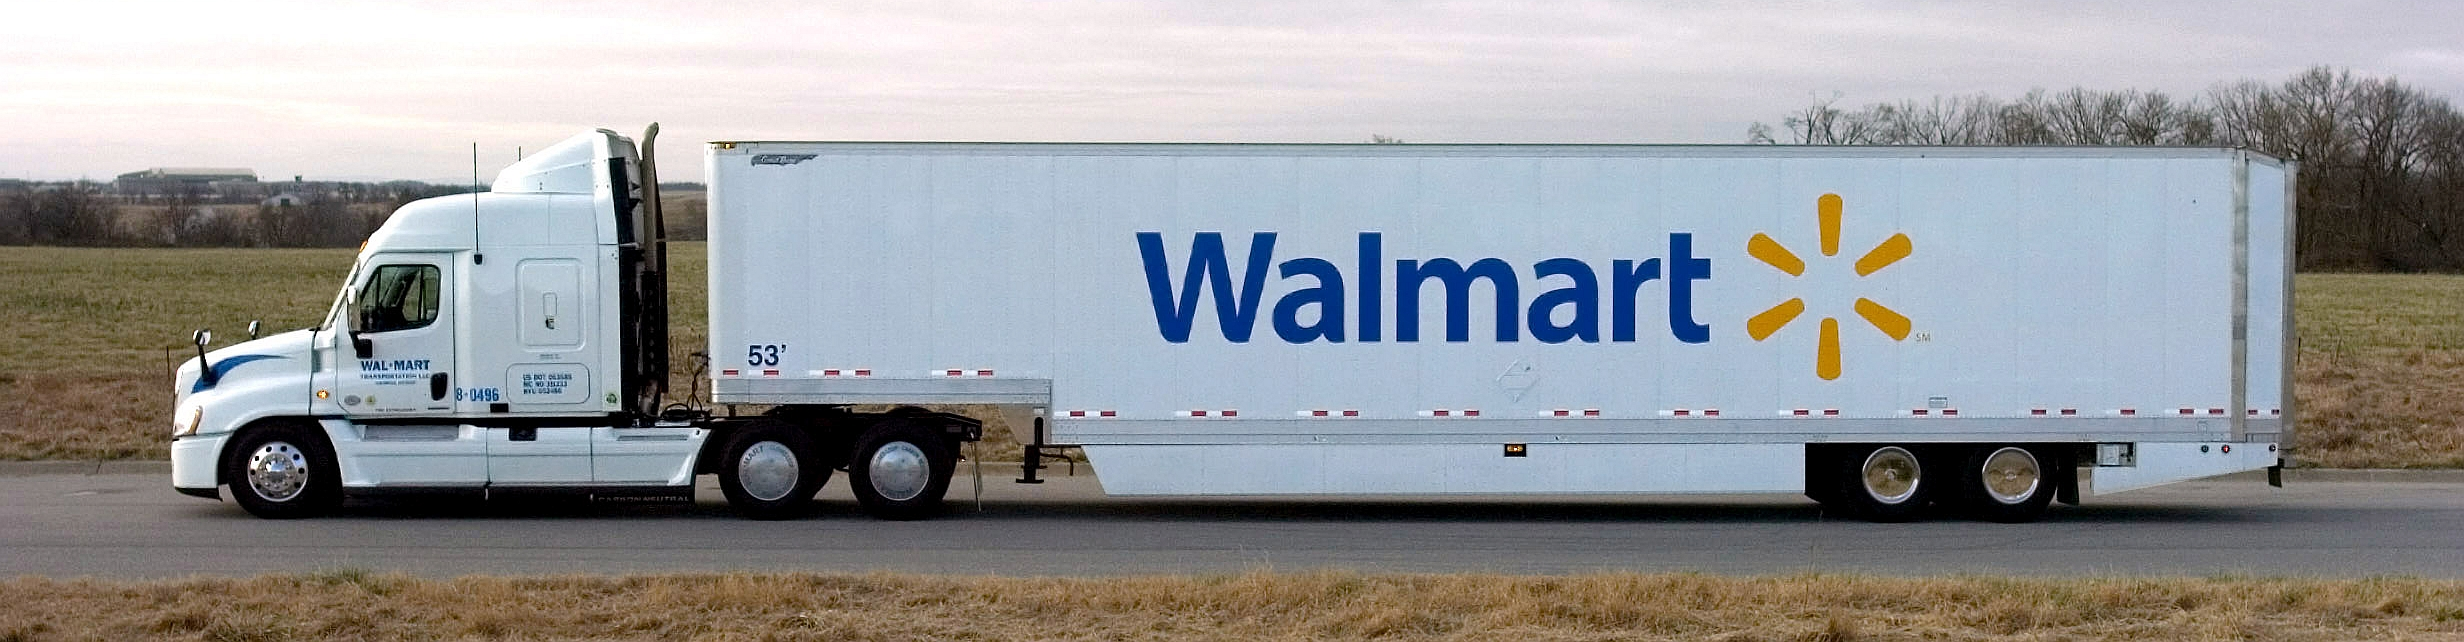 Walmart's_Grease_Fuel_Truck.jpg